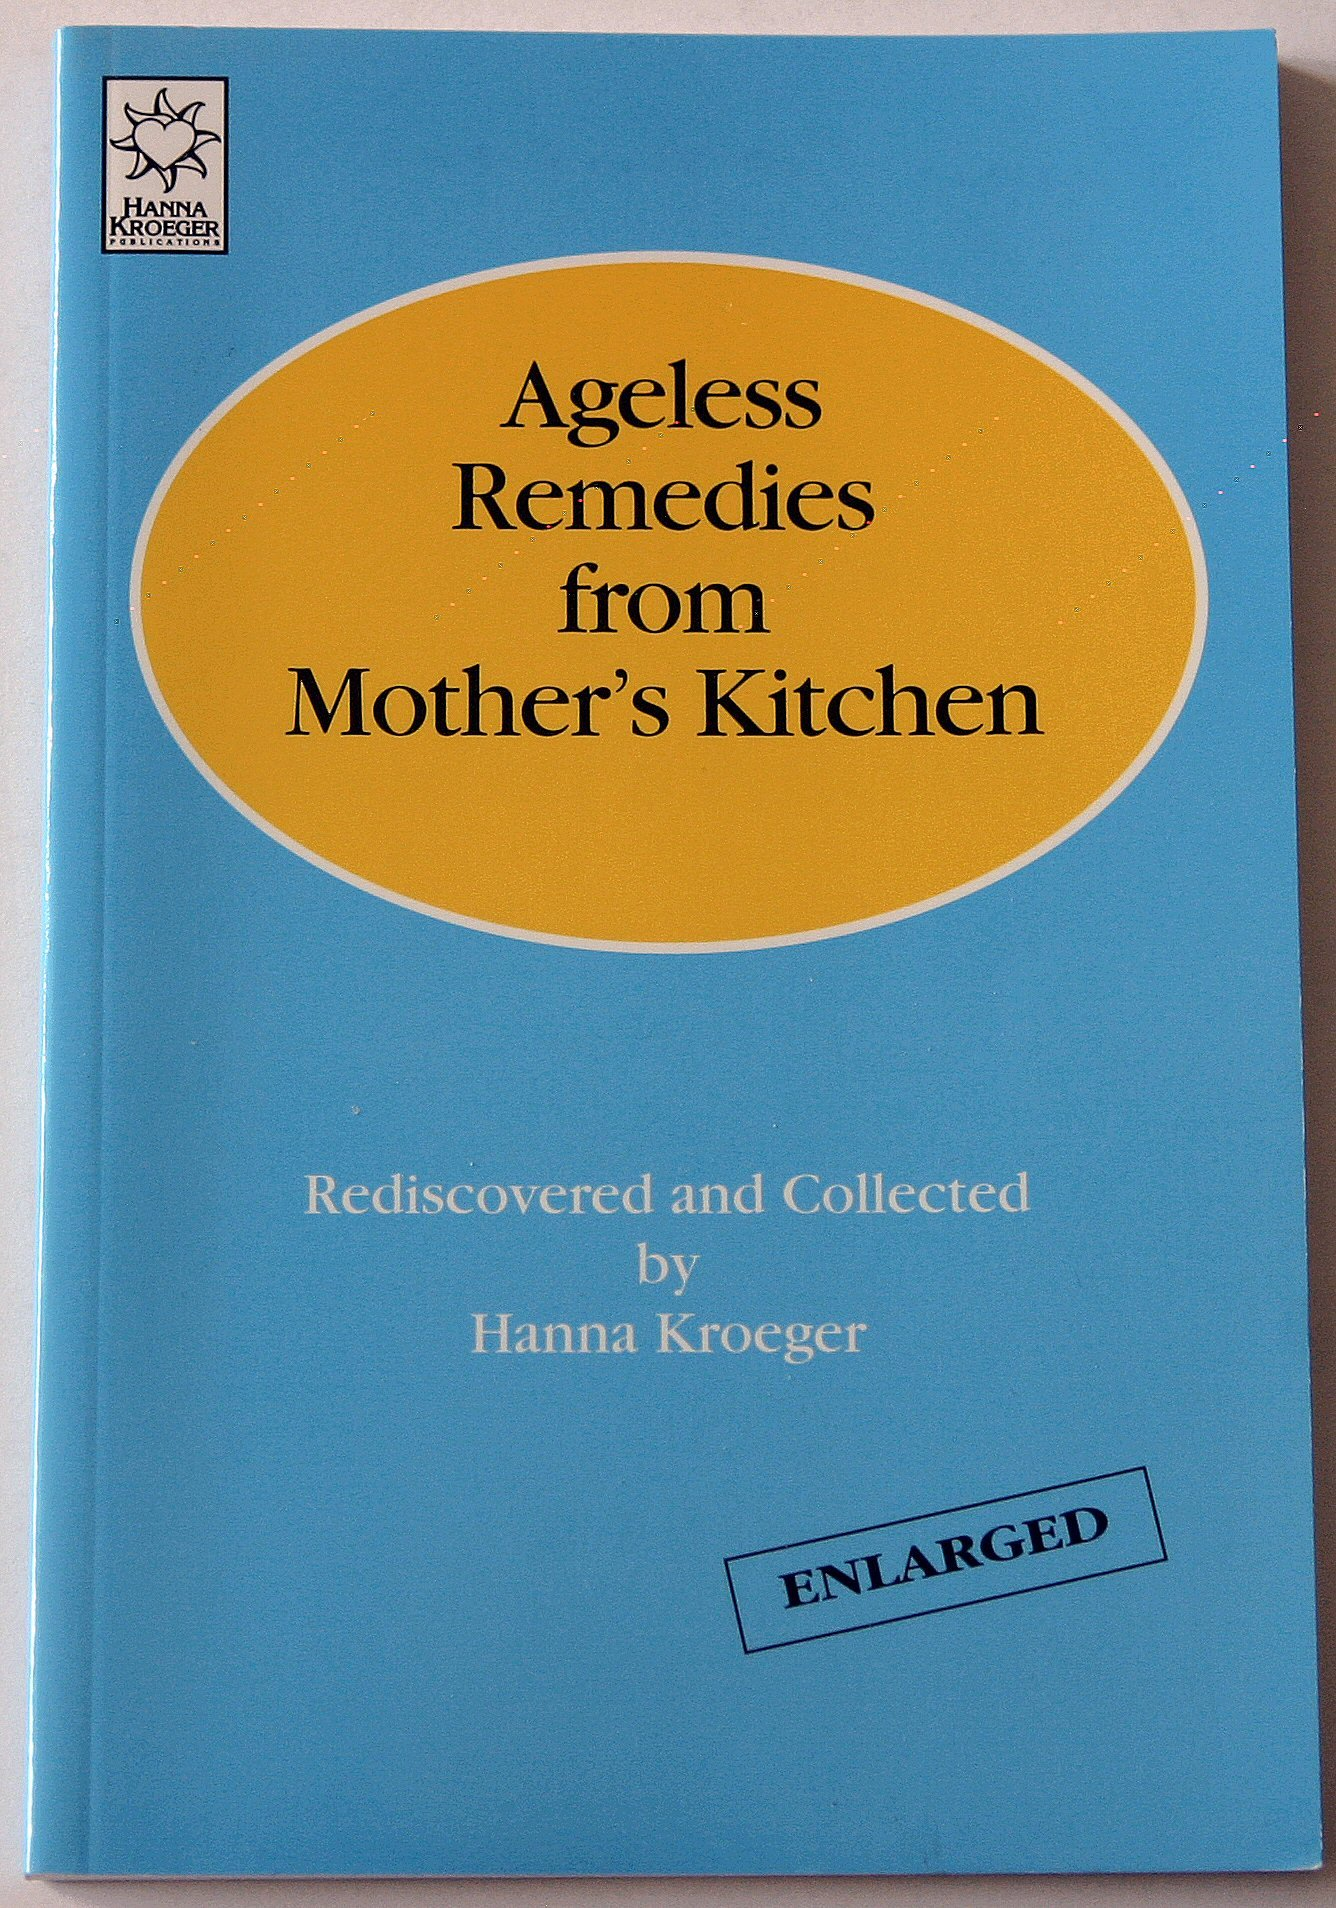 Ageless remedies mothers kitchen Rediscovered product image